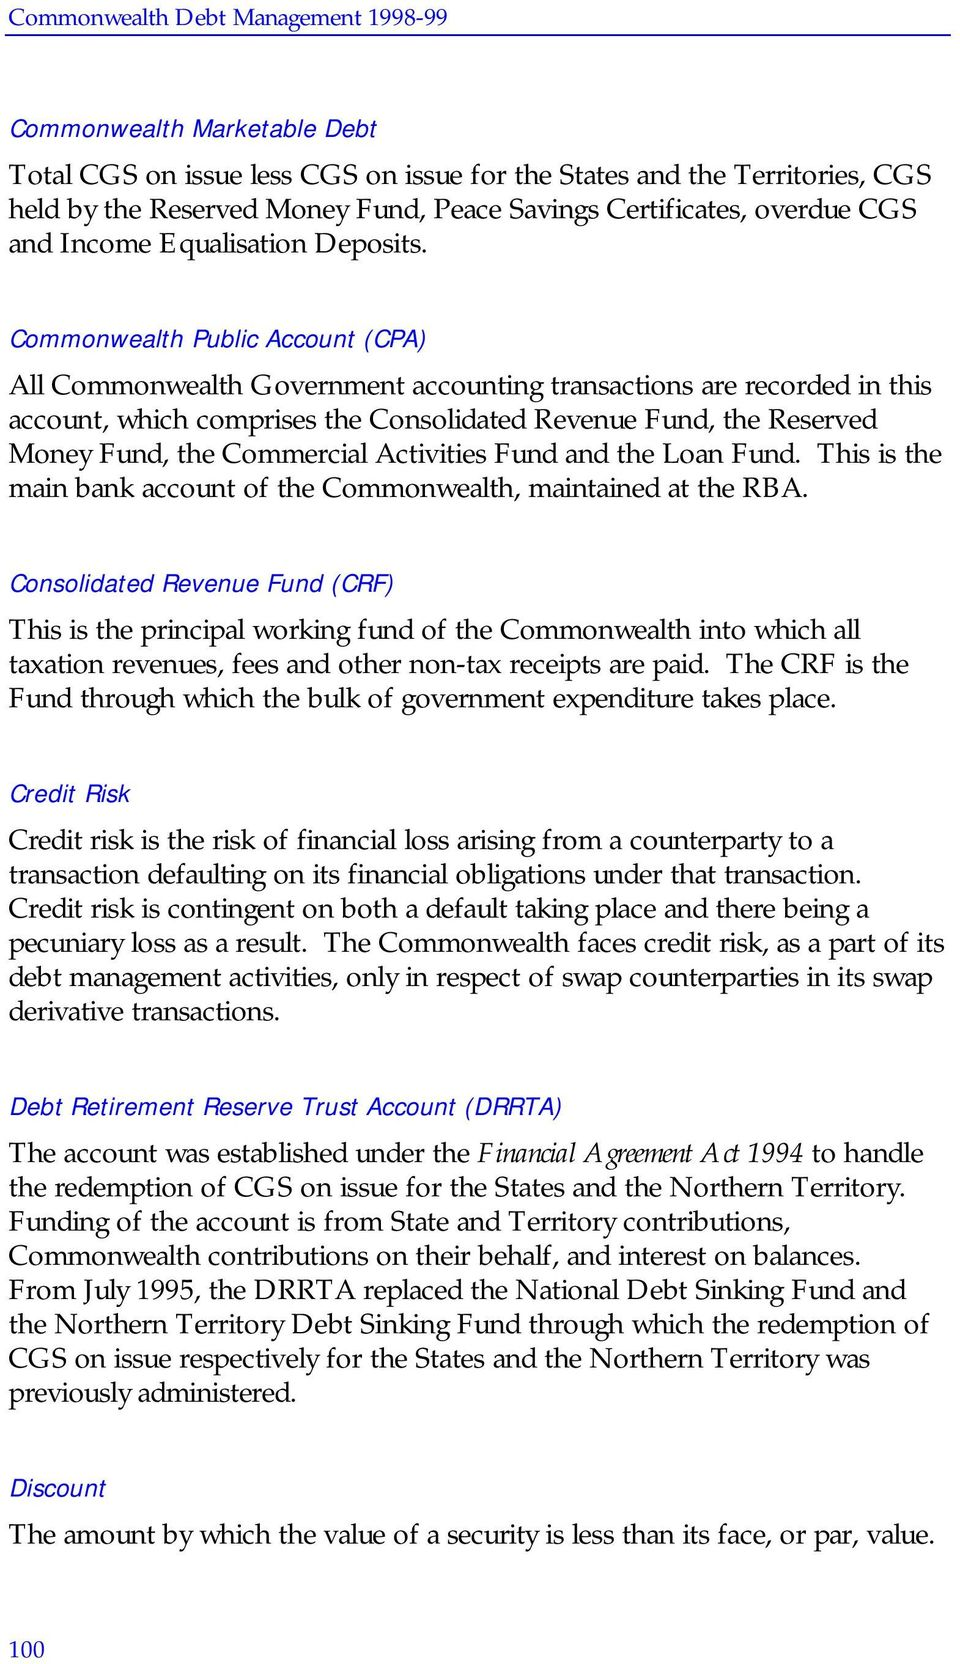 Commonwealth Public Account (CPA) All Commonwealth Government accounting transactions are recorded in this account, which comprises the Consolidated Revenue Fund, the Reserved Money Fund, the